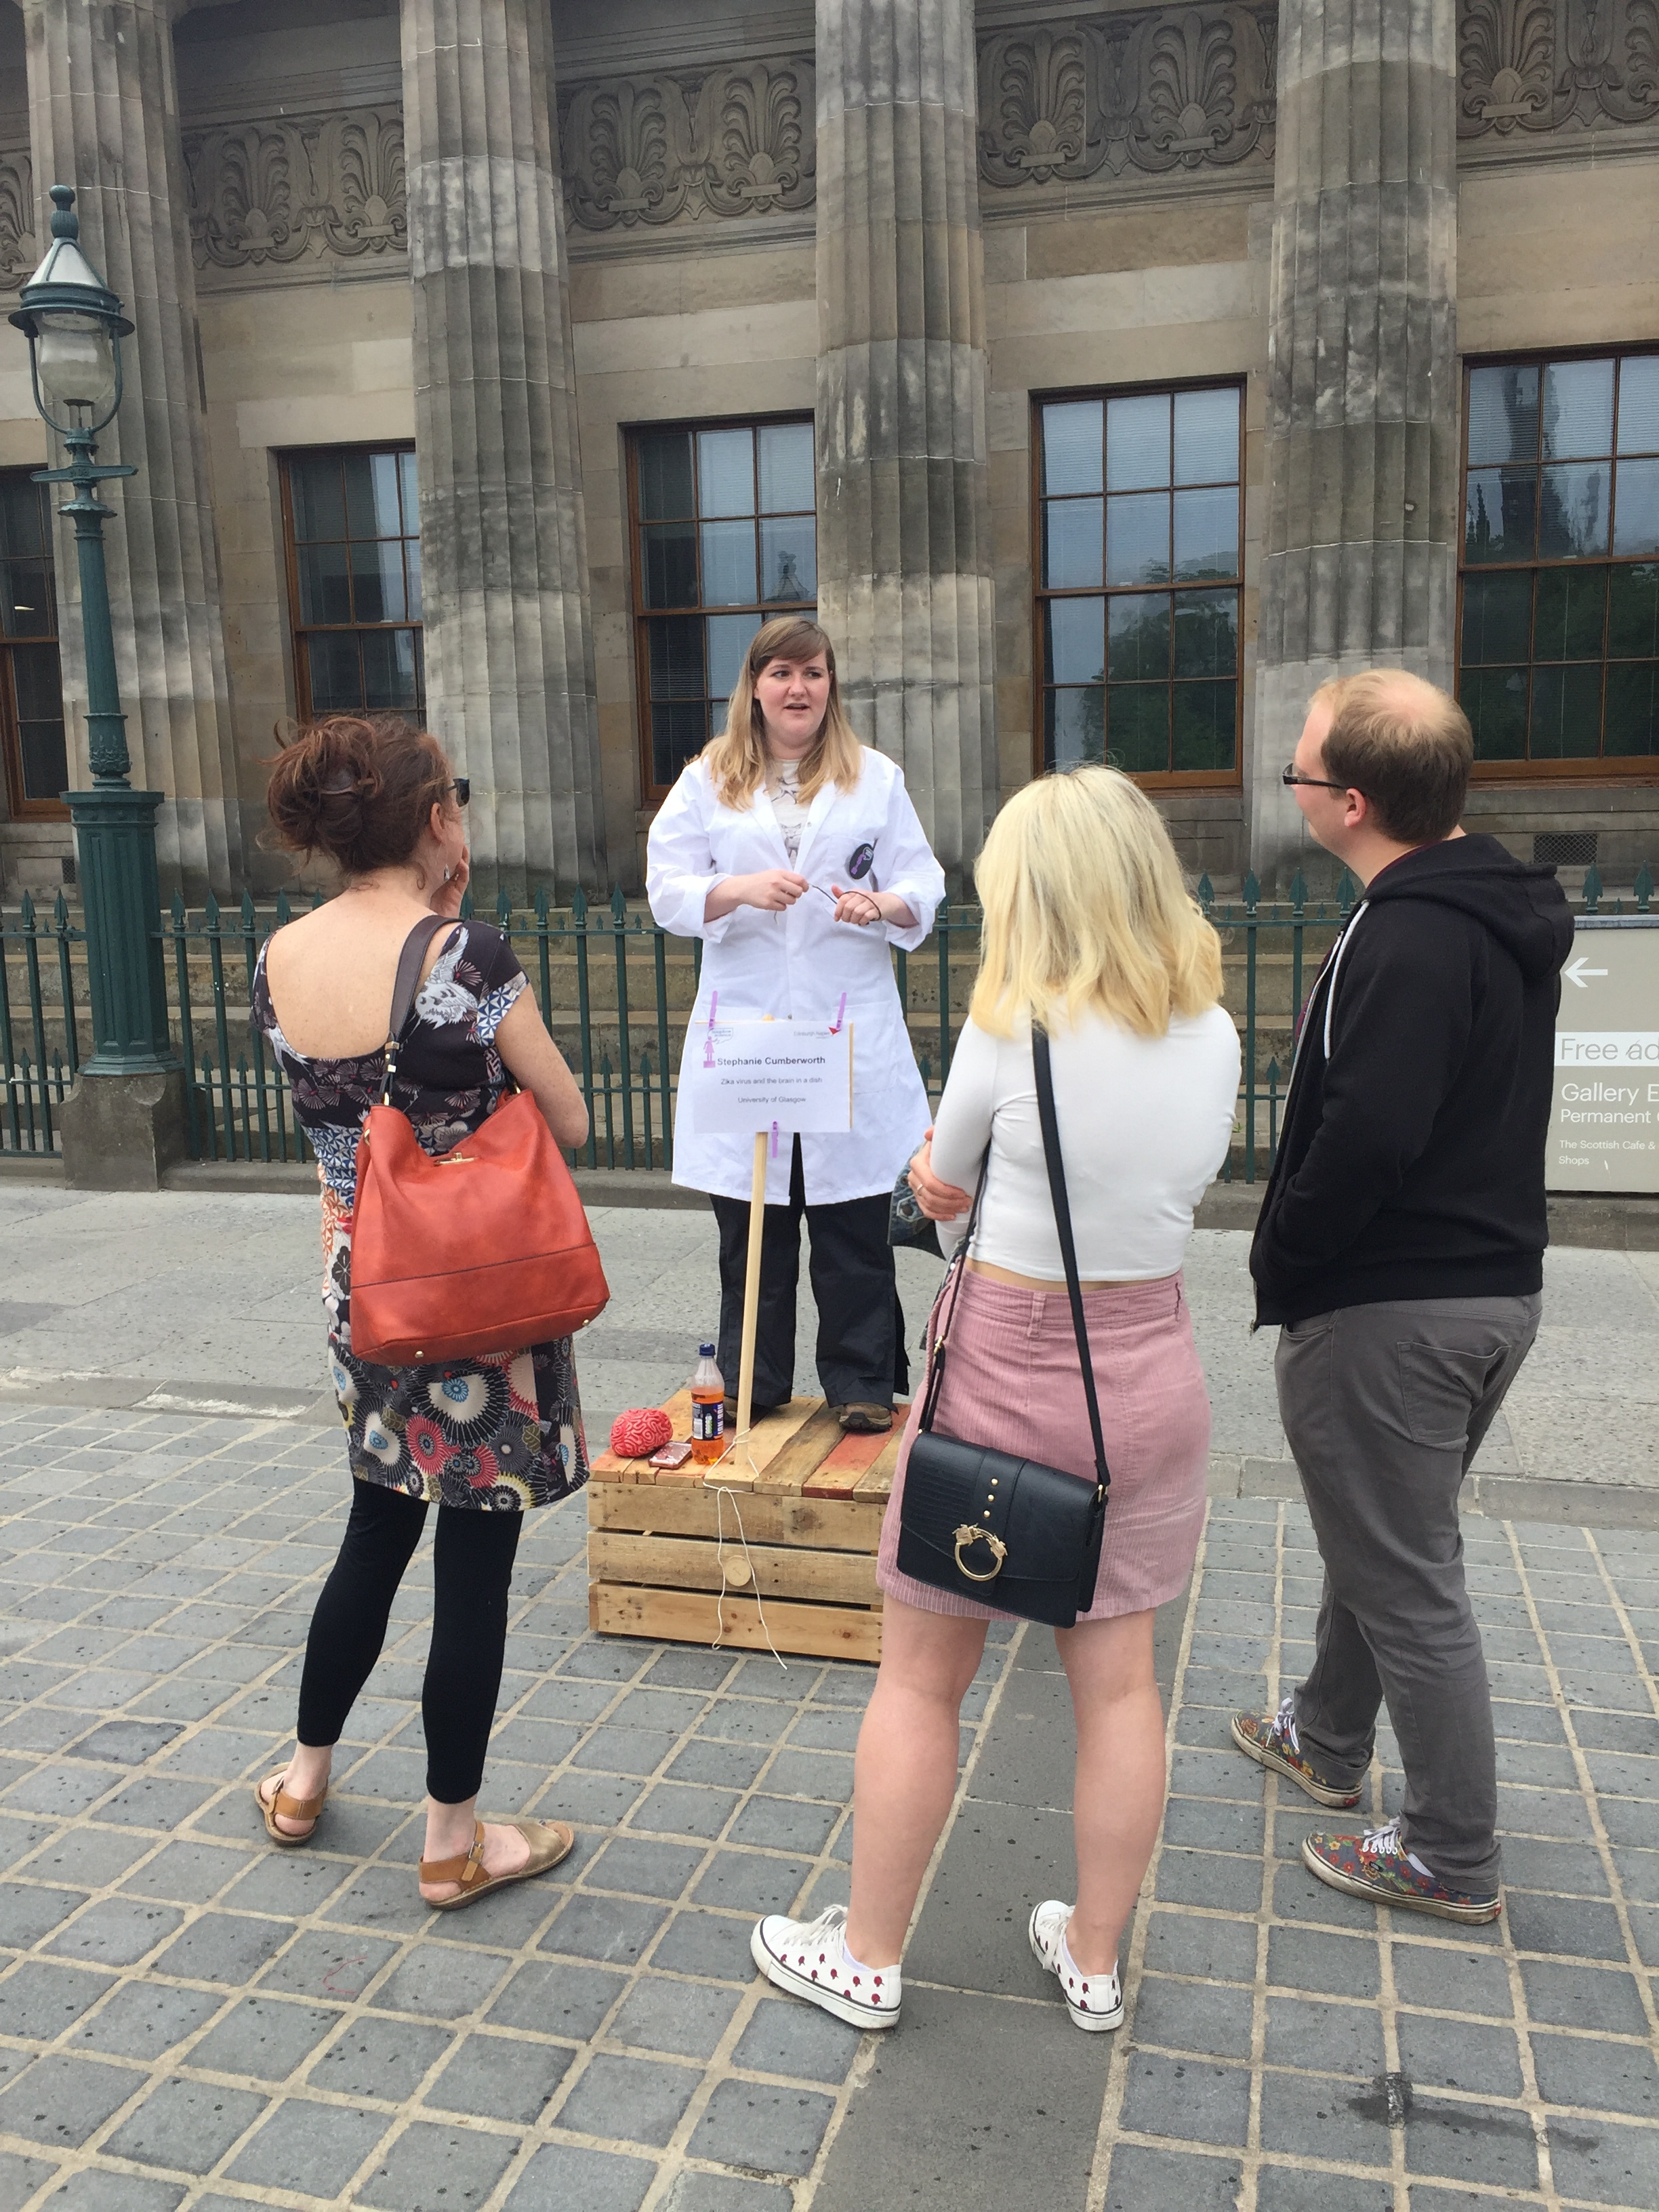 Image credit: Dawn Smith  This is me on top of my soapbox at the  Edinburgh Soapbox Science event 2018 . Despite the look on my face in this photo, I was having a blast!